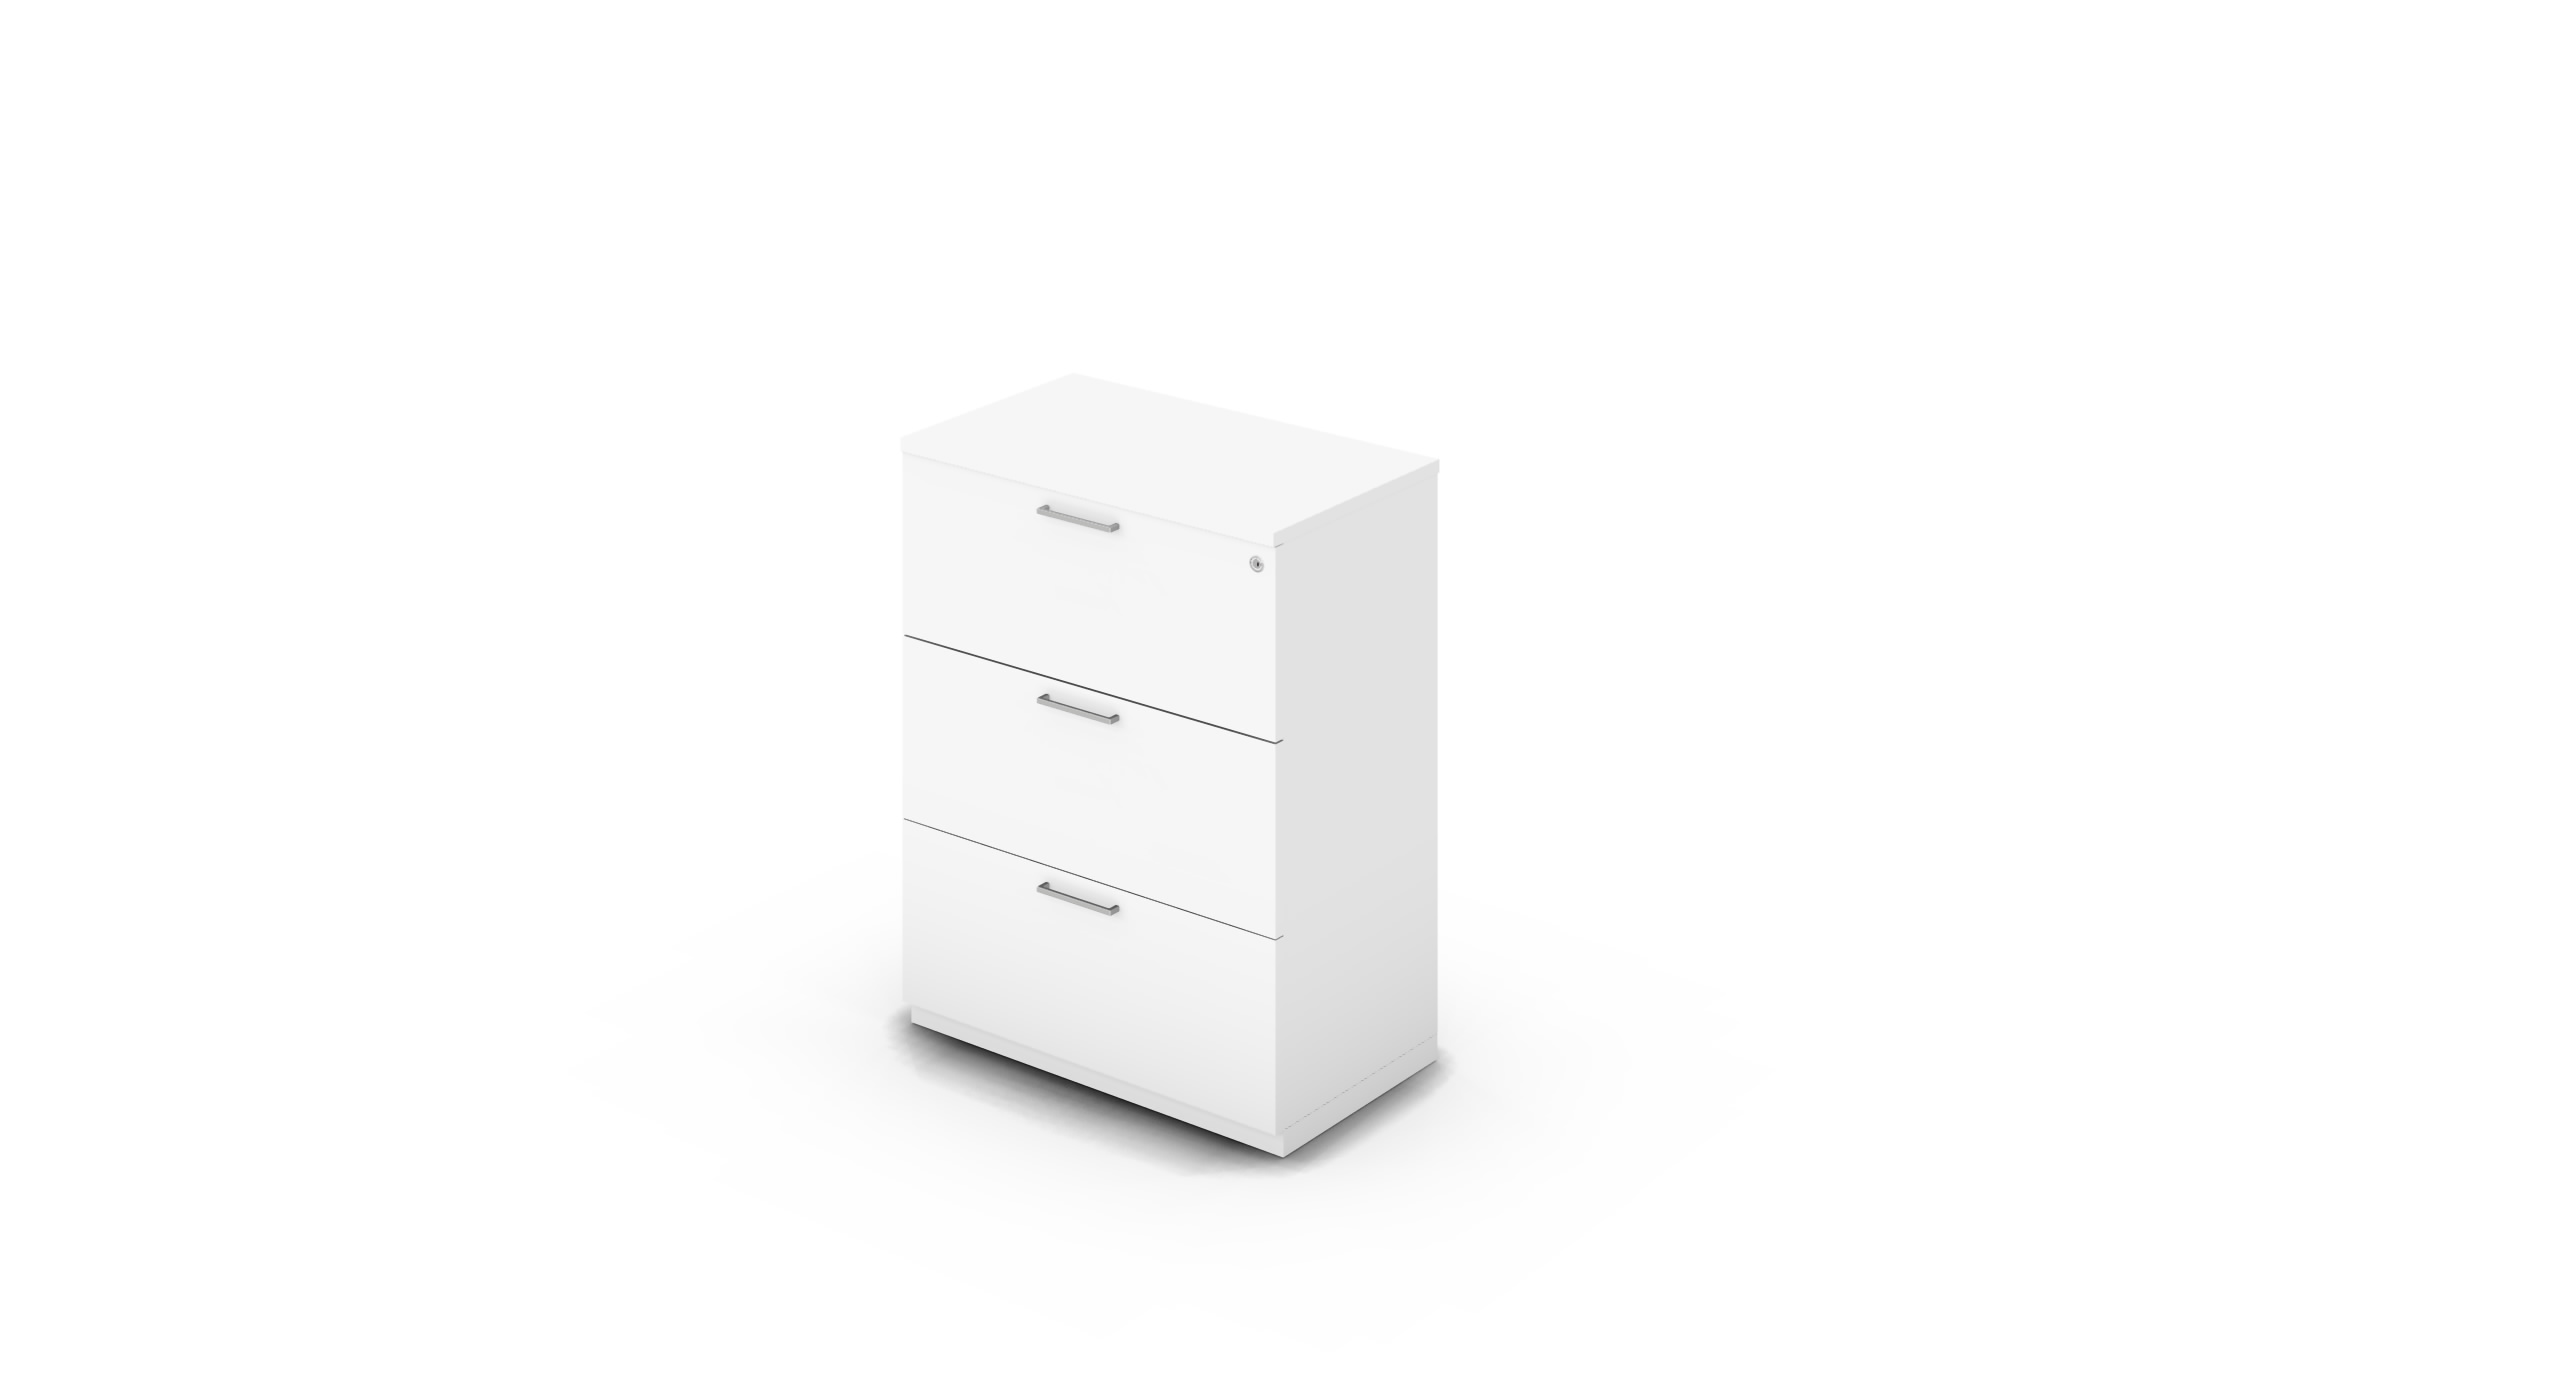 Cabinet_800x450x1125_DR_White_Bar_Square_WithCylinder